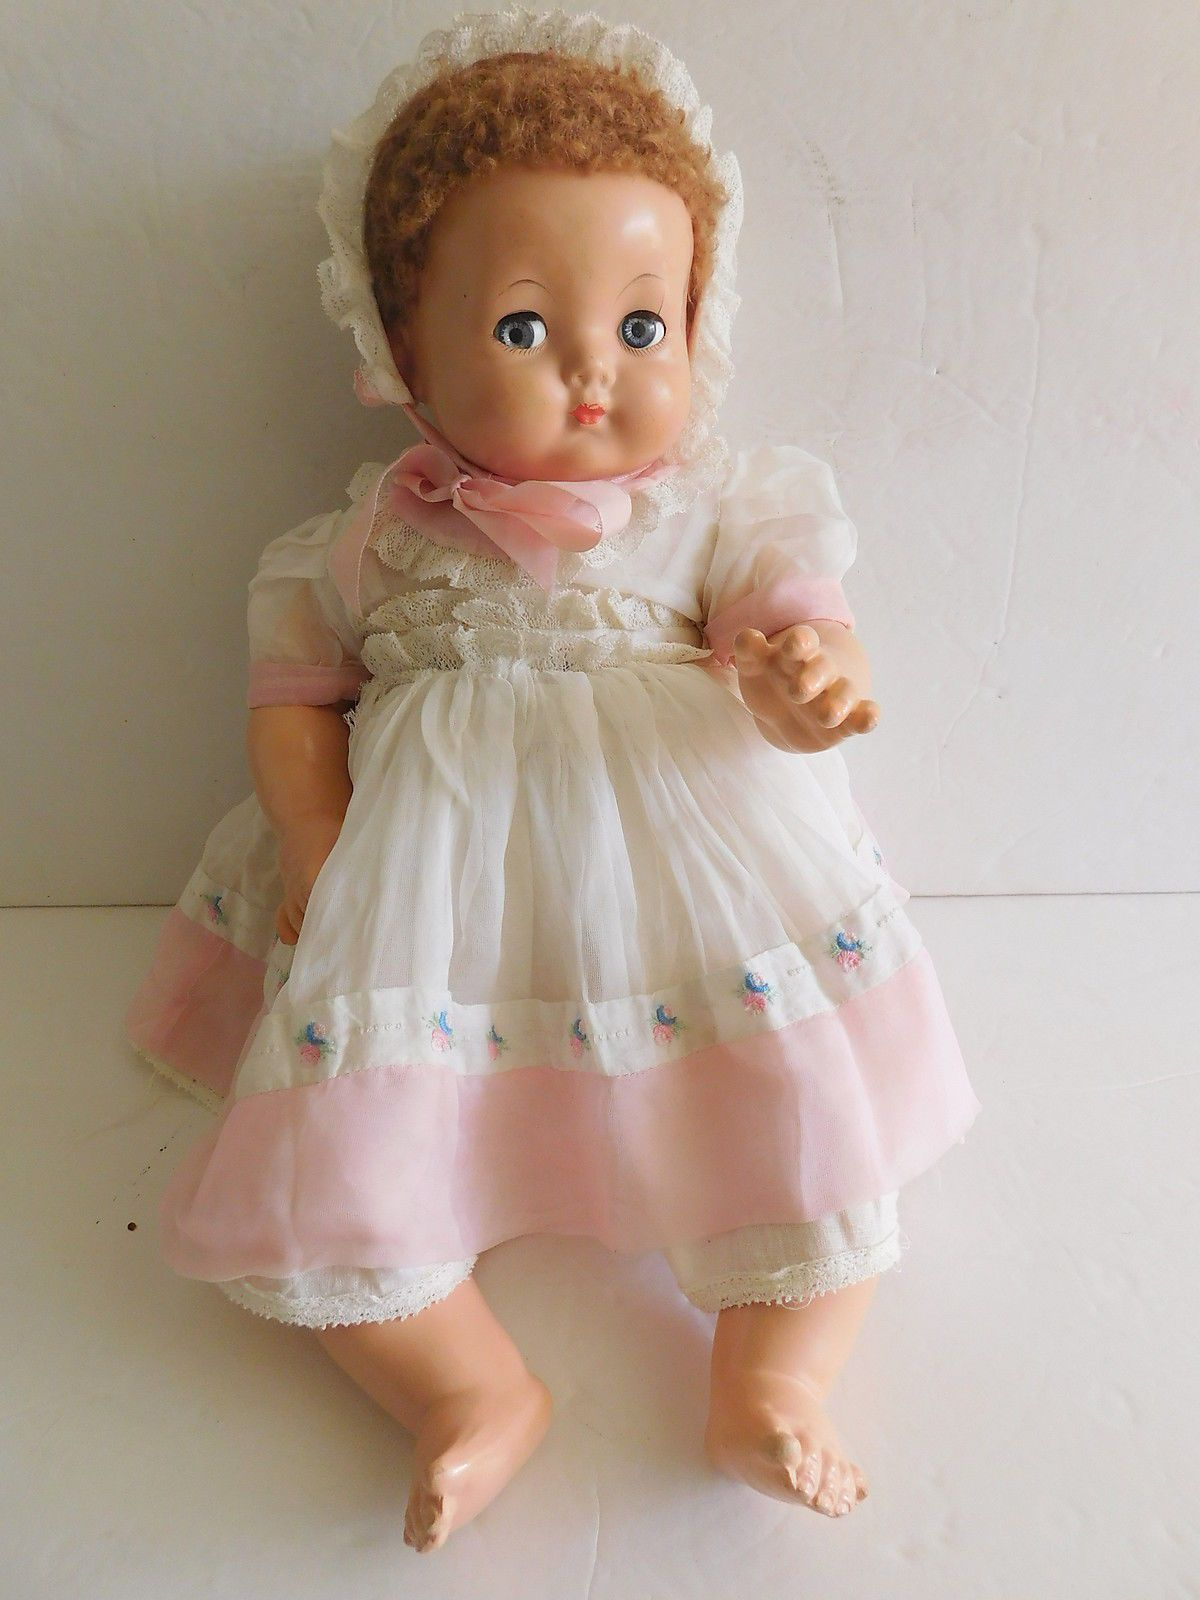 1930 S Effanbee Sweetie Pie Composition Flirty Eyes 18 Baby Doll